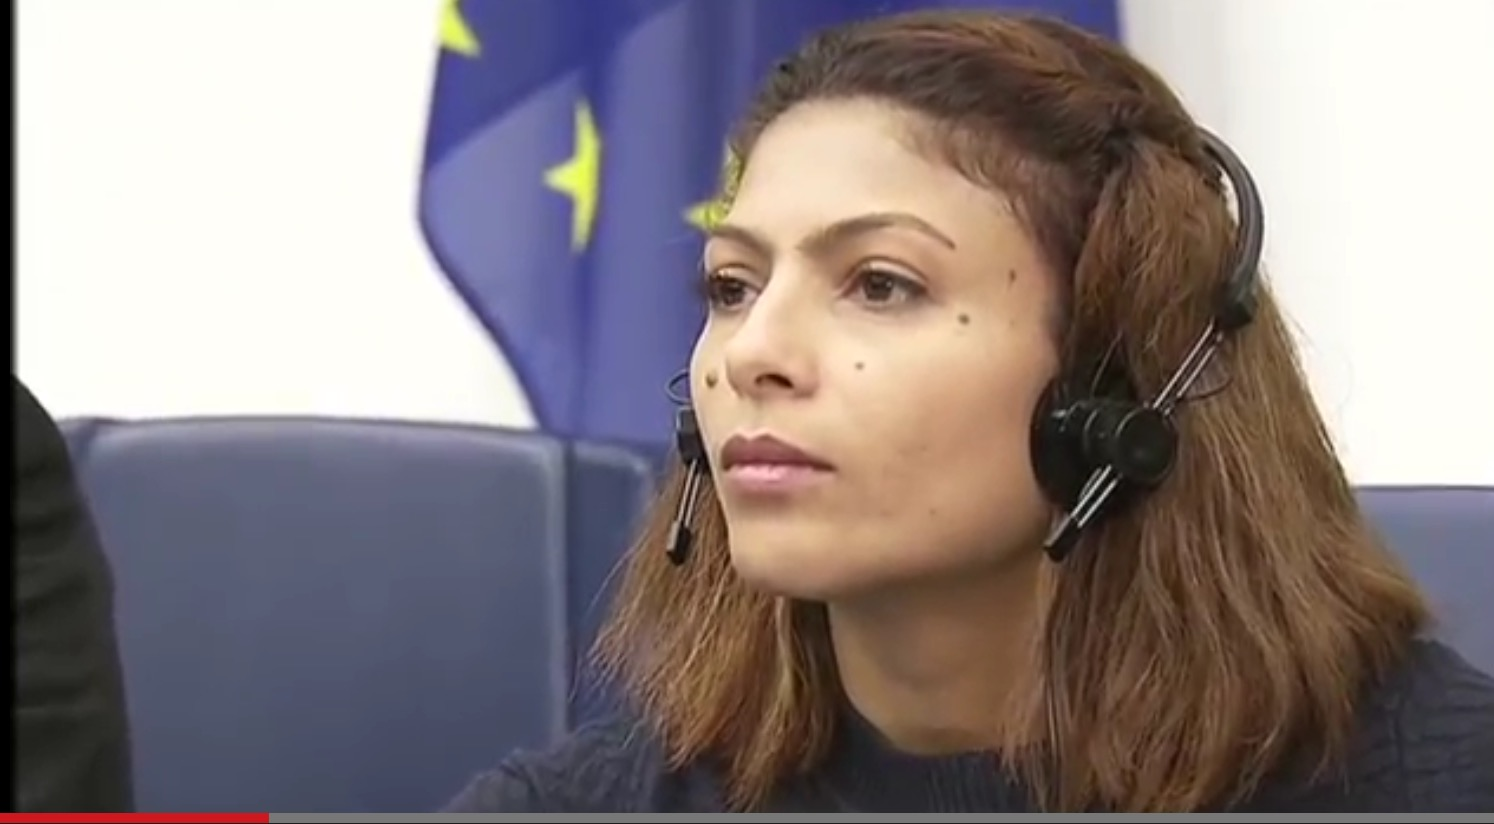 VIDEO: EU Parliament – Exchange with Ensaf Haidar, wife of Raif Badawi, Sakharov Prize 2015 (extracts)